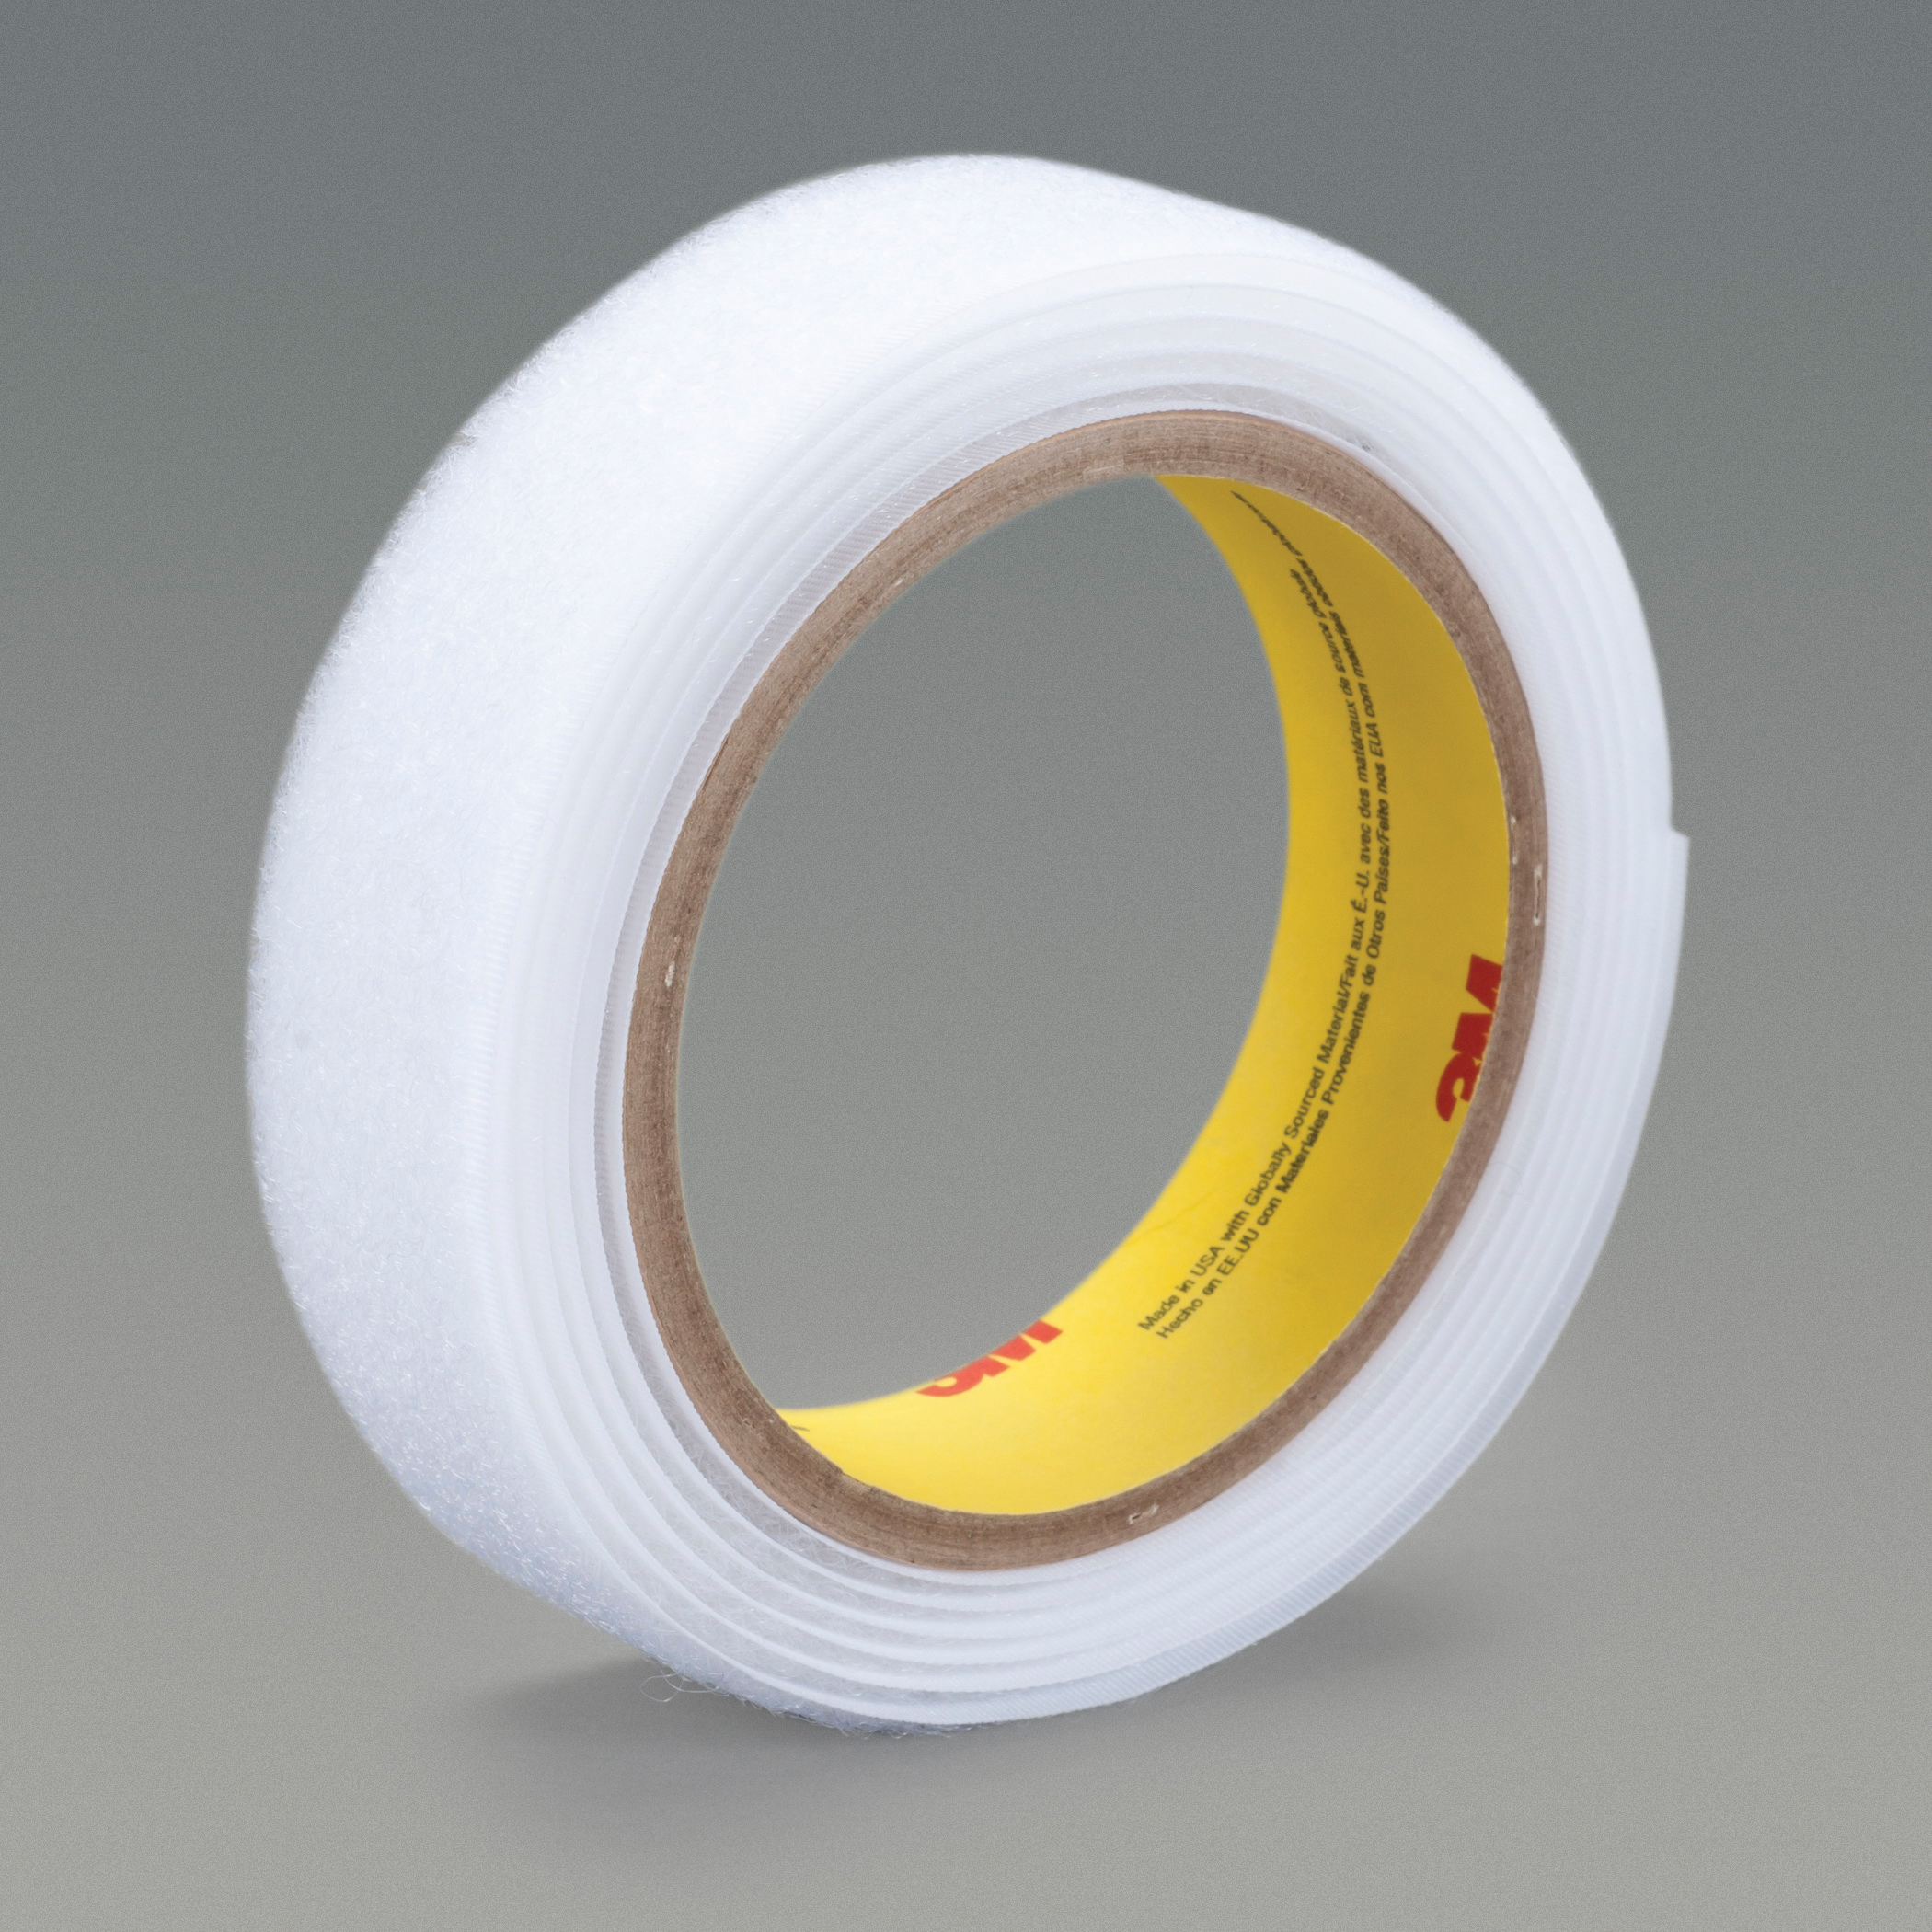 3M™ 021200-86267 Reclosable Loop Fastener Tape, 50 yd L x 1 in W, 0.15 in THK Engaged, Synthetic Rubber Adhesive, Woven Nylon Backing, White